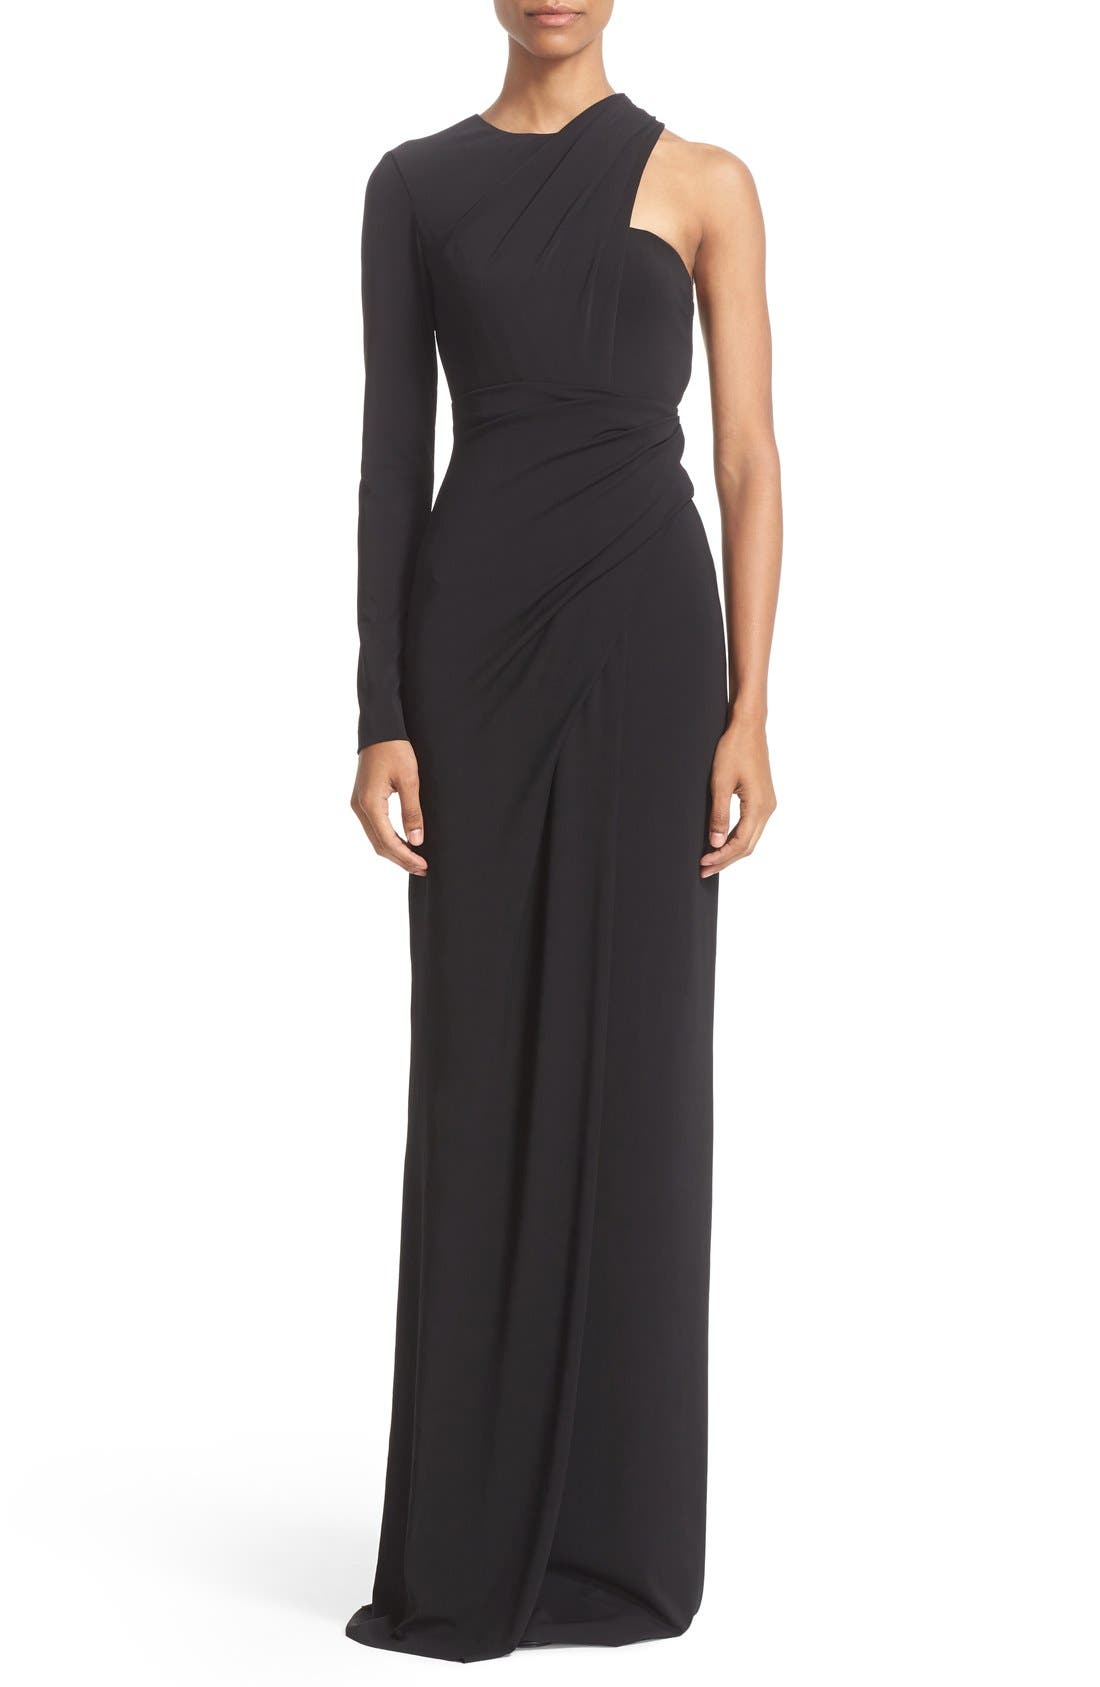 ALEXANDER WANG Draped Asymmetrical One-Sleeve Gown